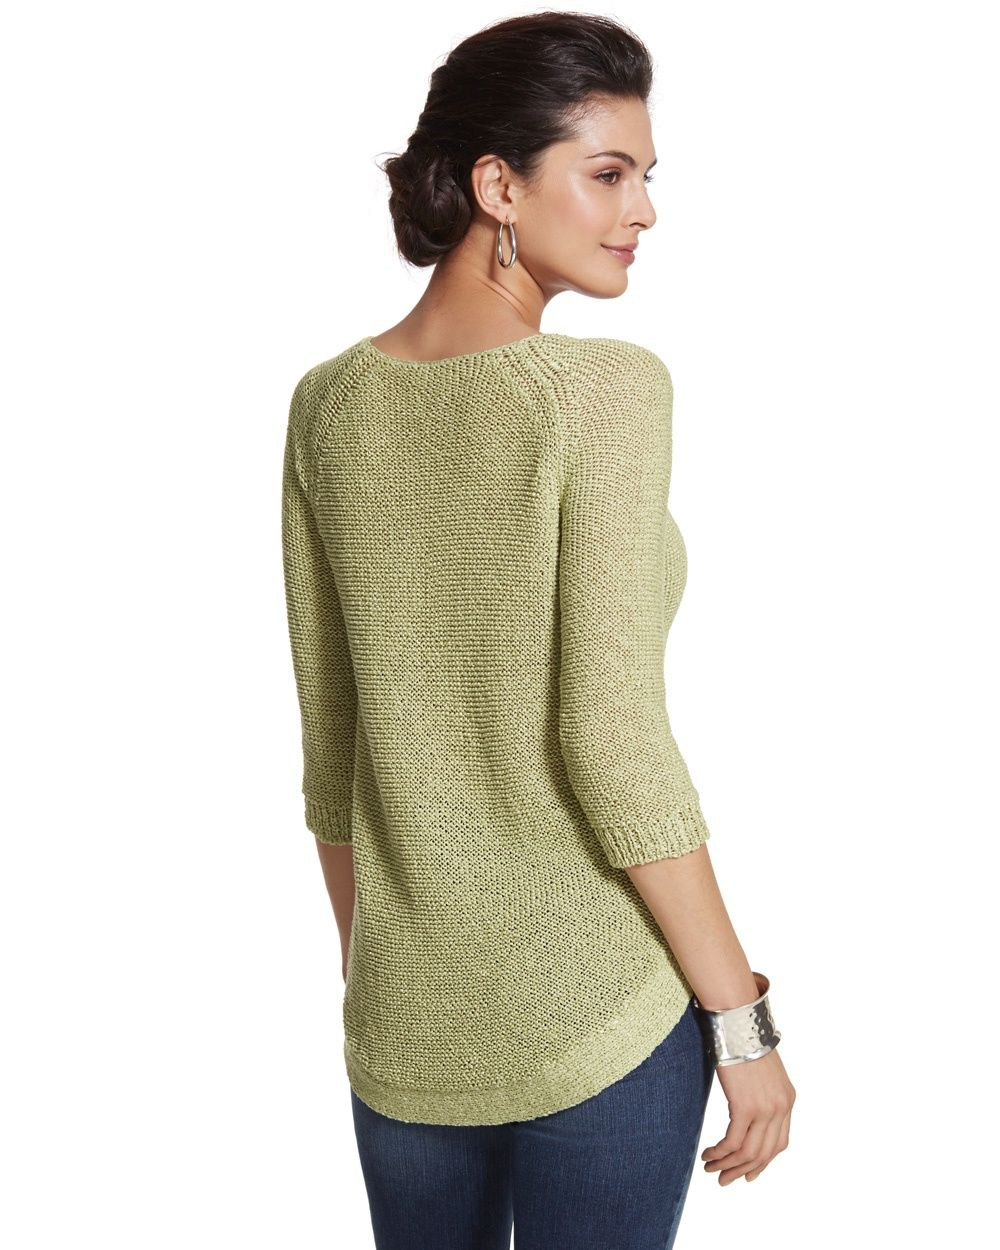 https://www.chicos.com/store/product/marianne-pullover-sweater/570135553?color=3650&fromSearch=true&scPos=1-0-0